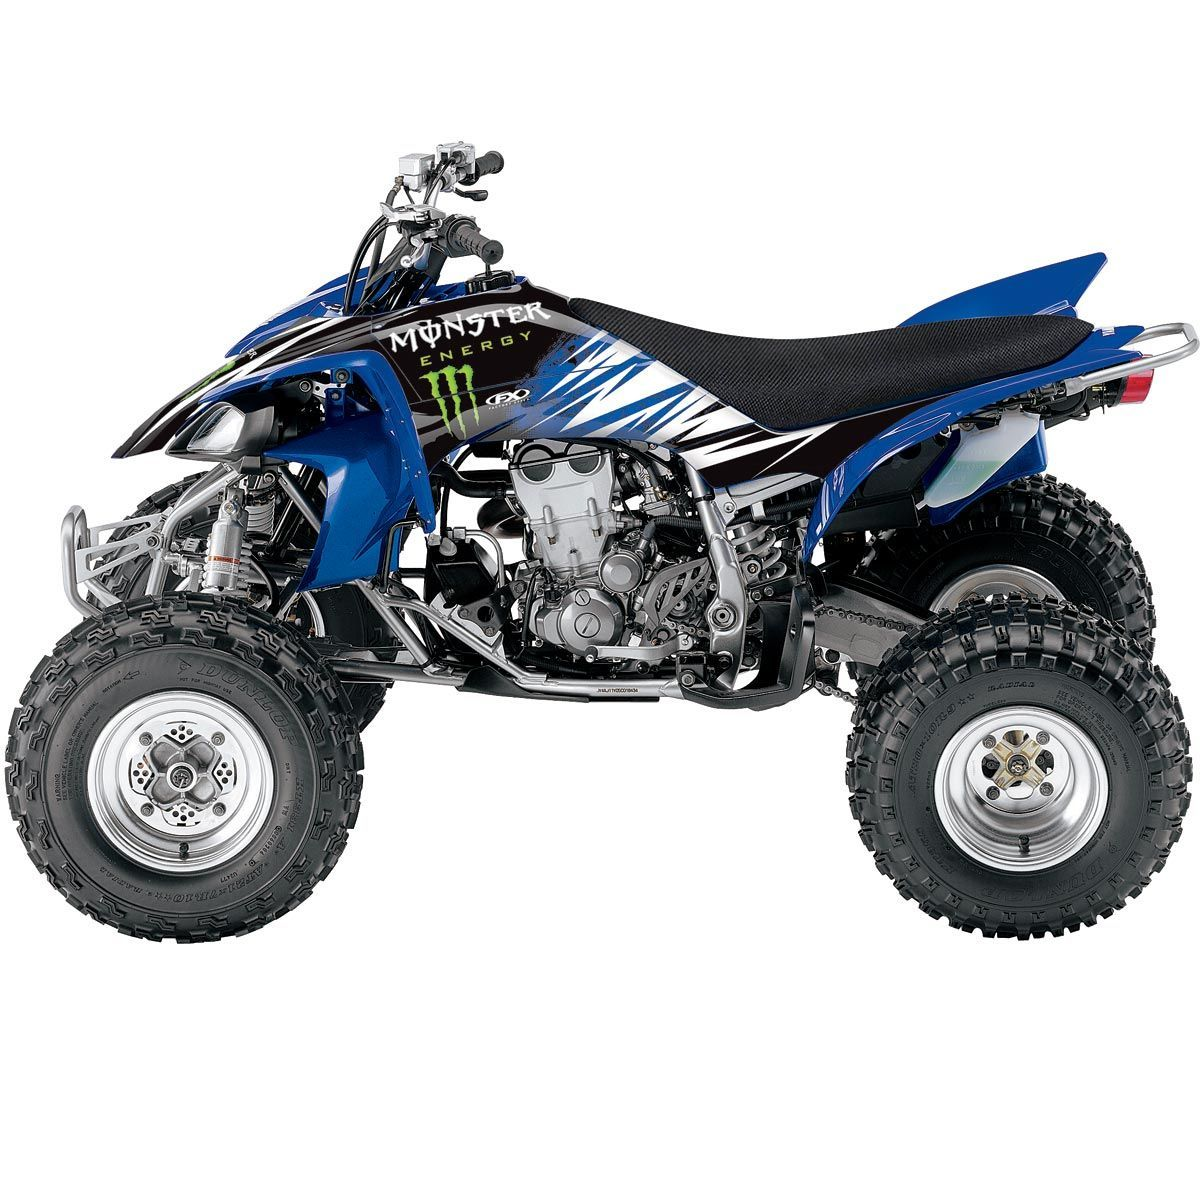 Factory Effex Monster Atv Graphic Kit Motorcycle Superstore